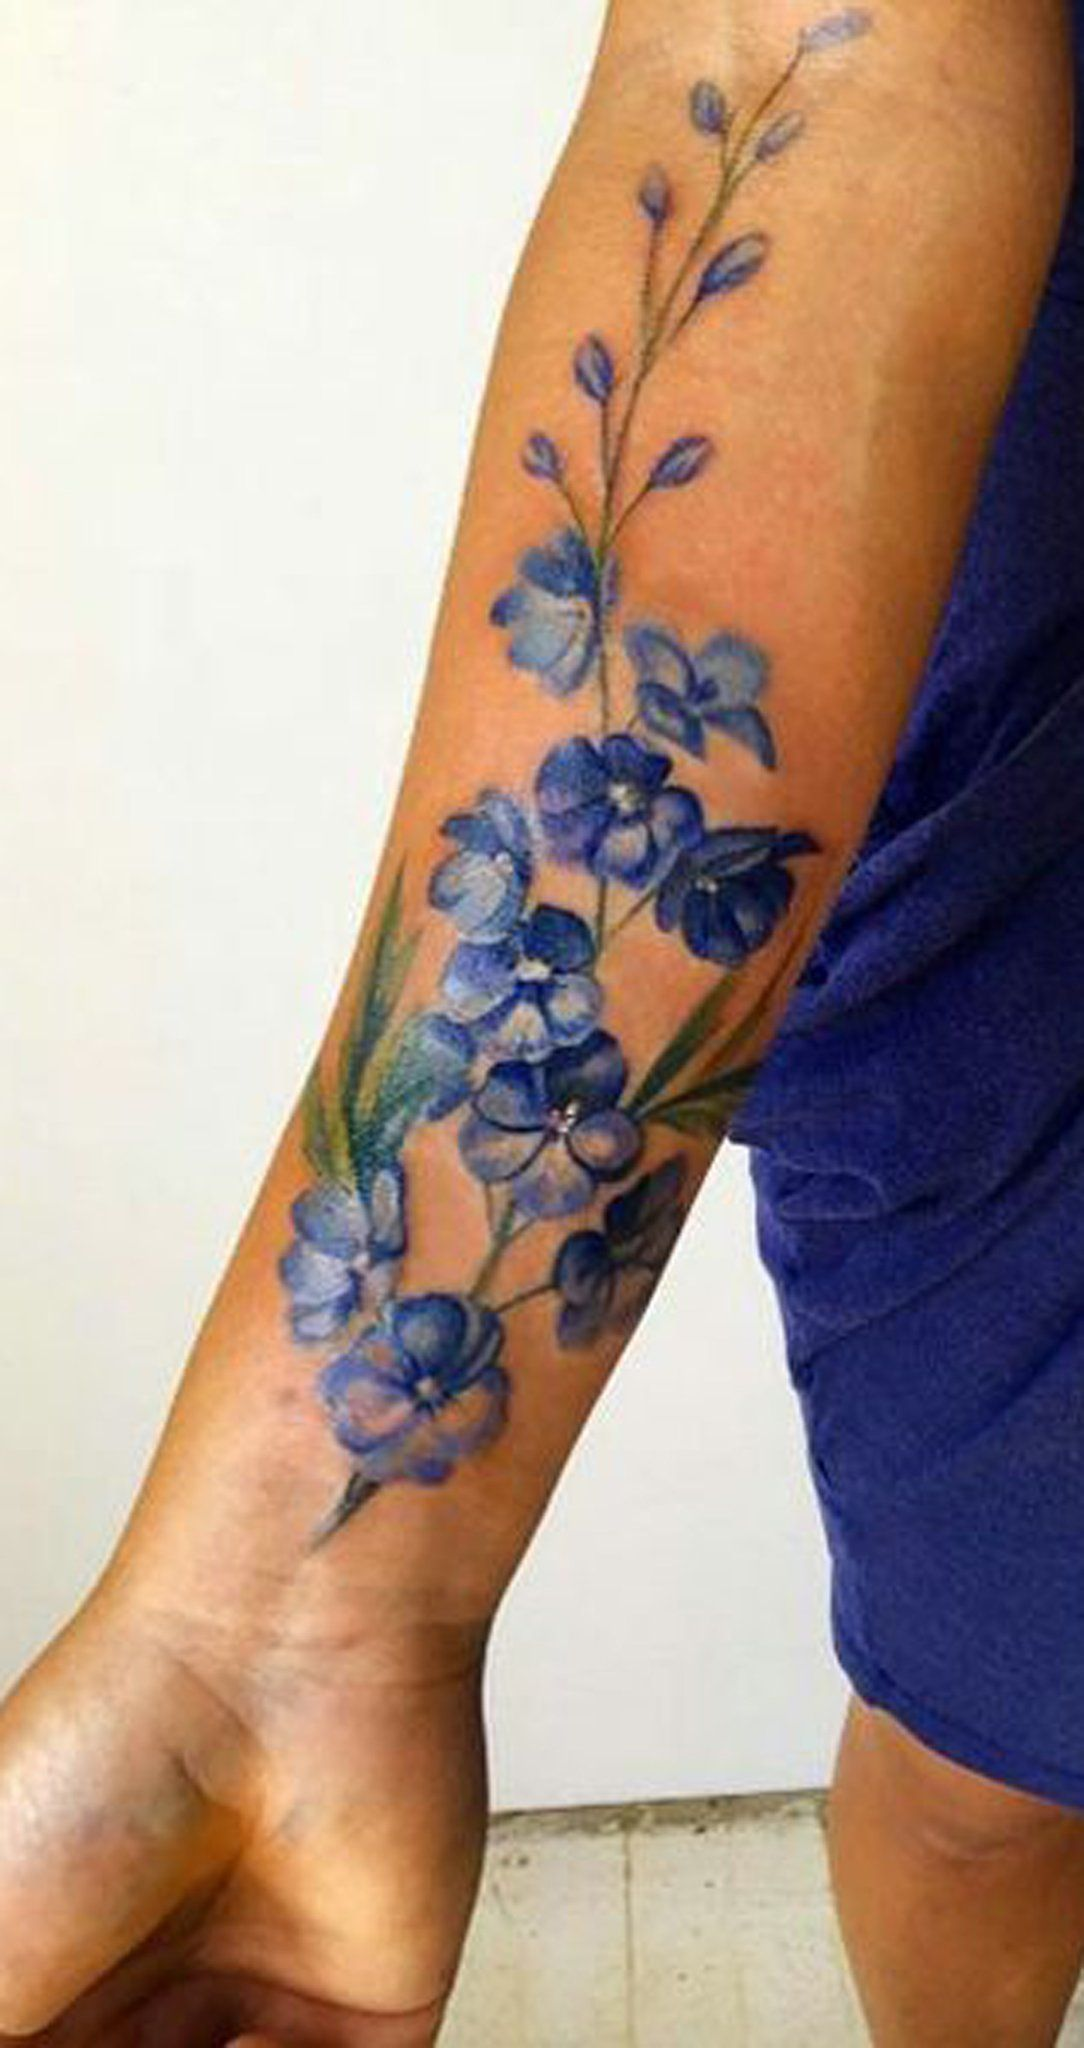 Watercolor Flower Forearm Tattoo Ideas for Women - ideas ...